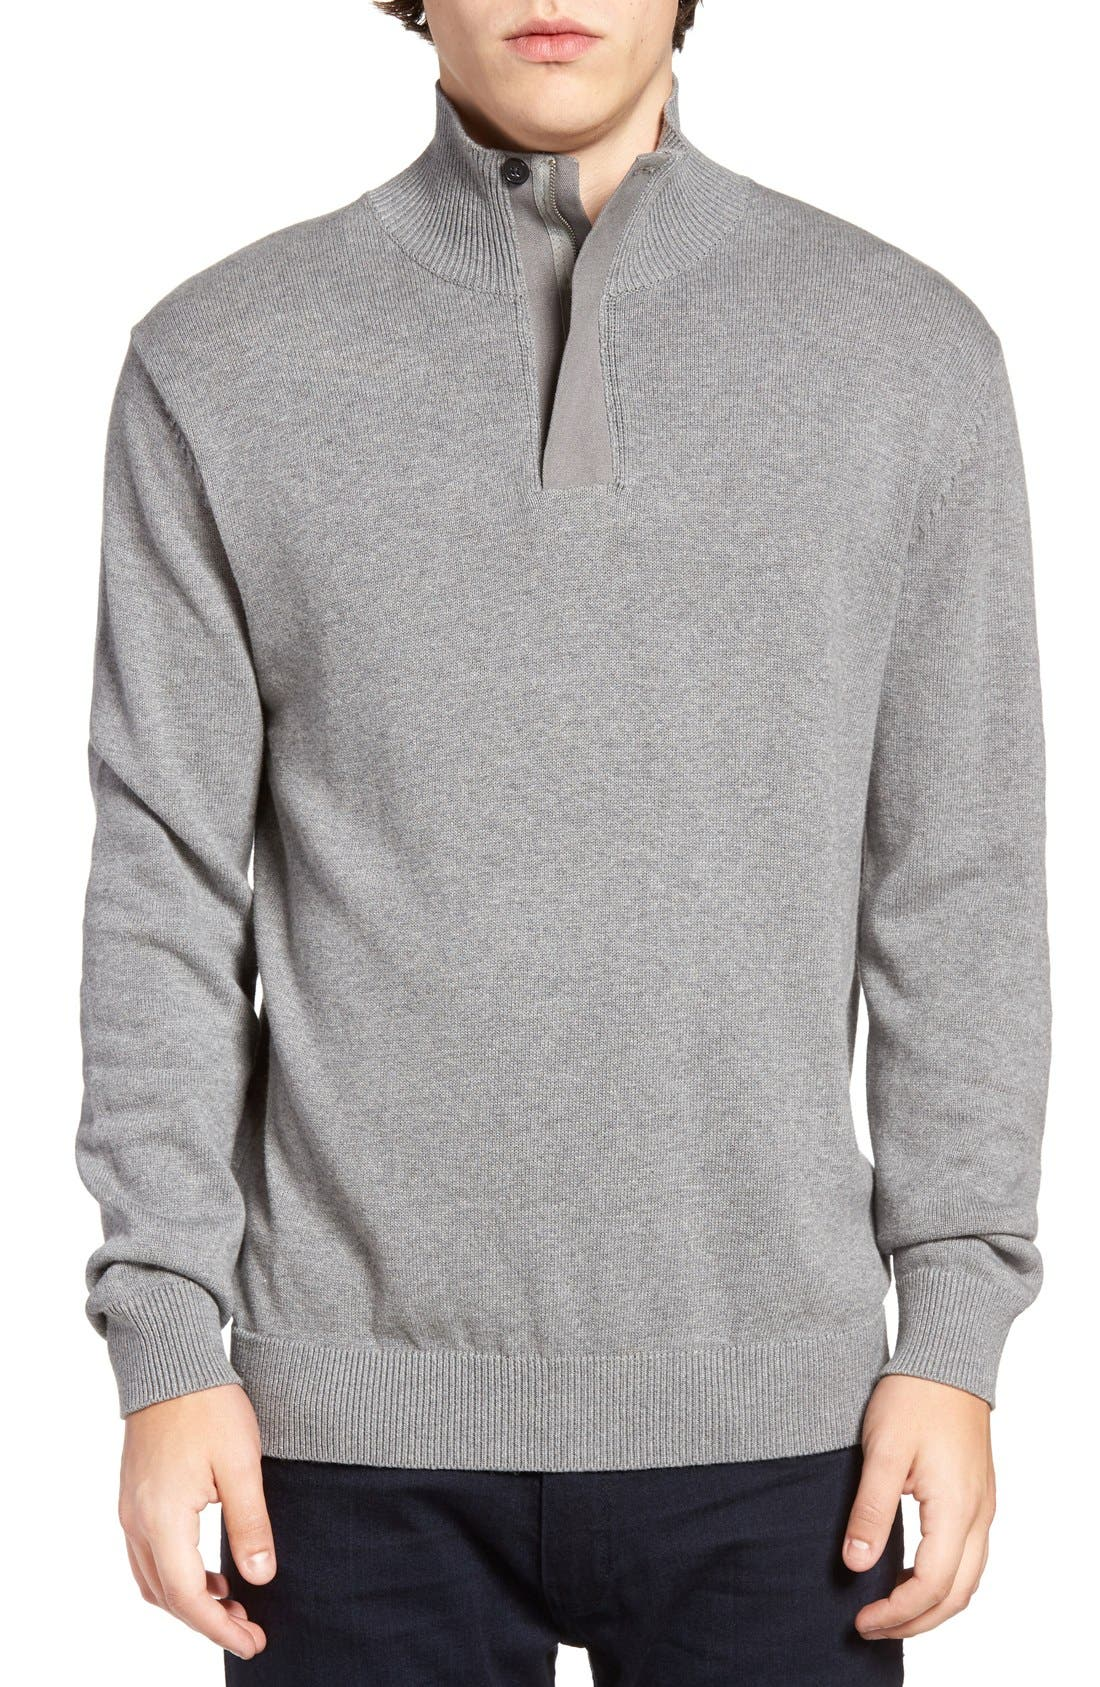 Main Image - French Connection Quarter Zip Sweater